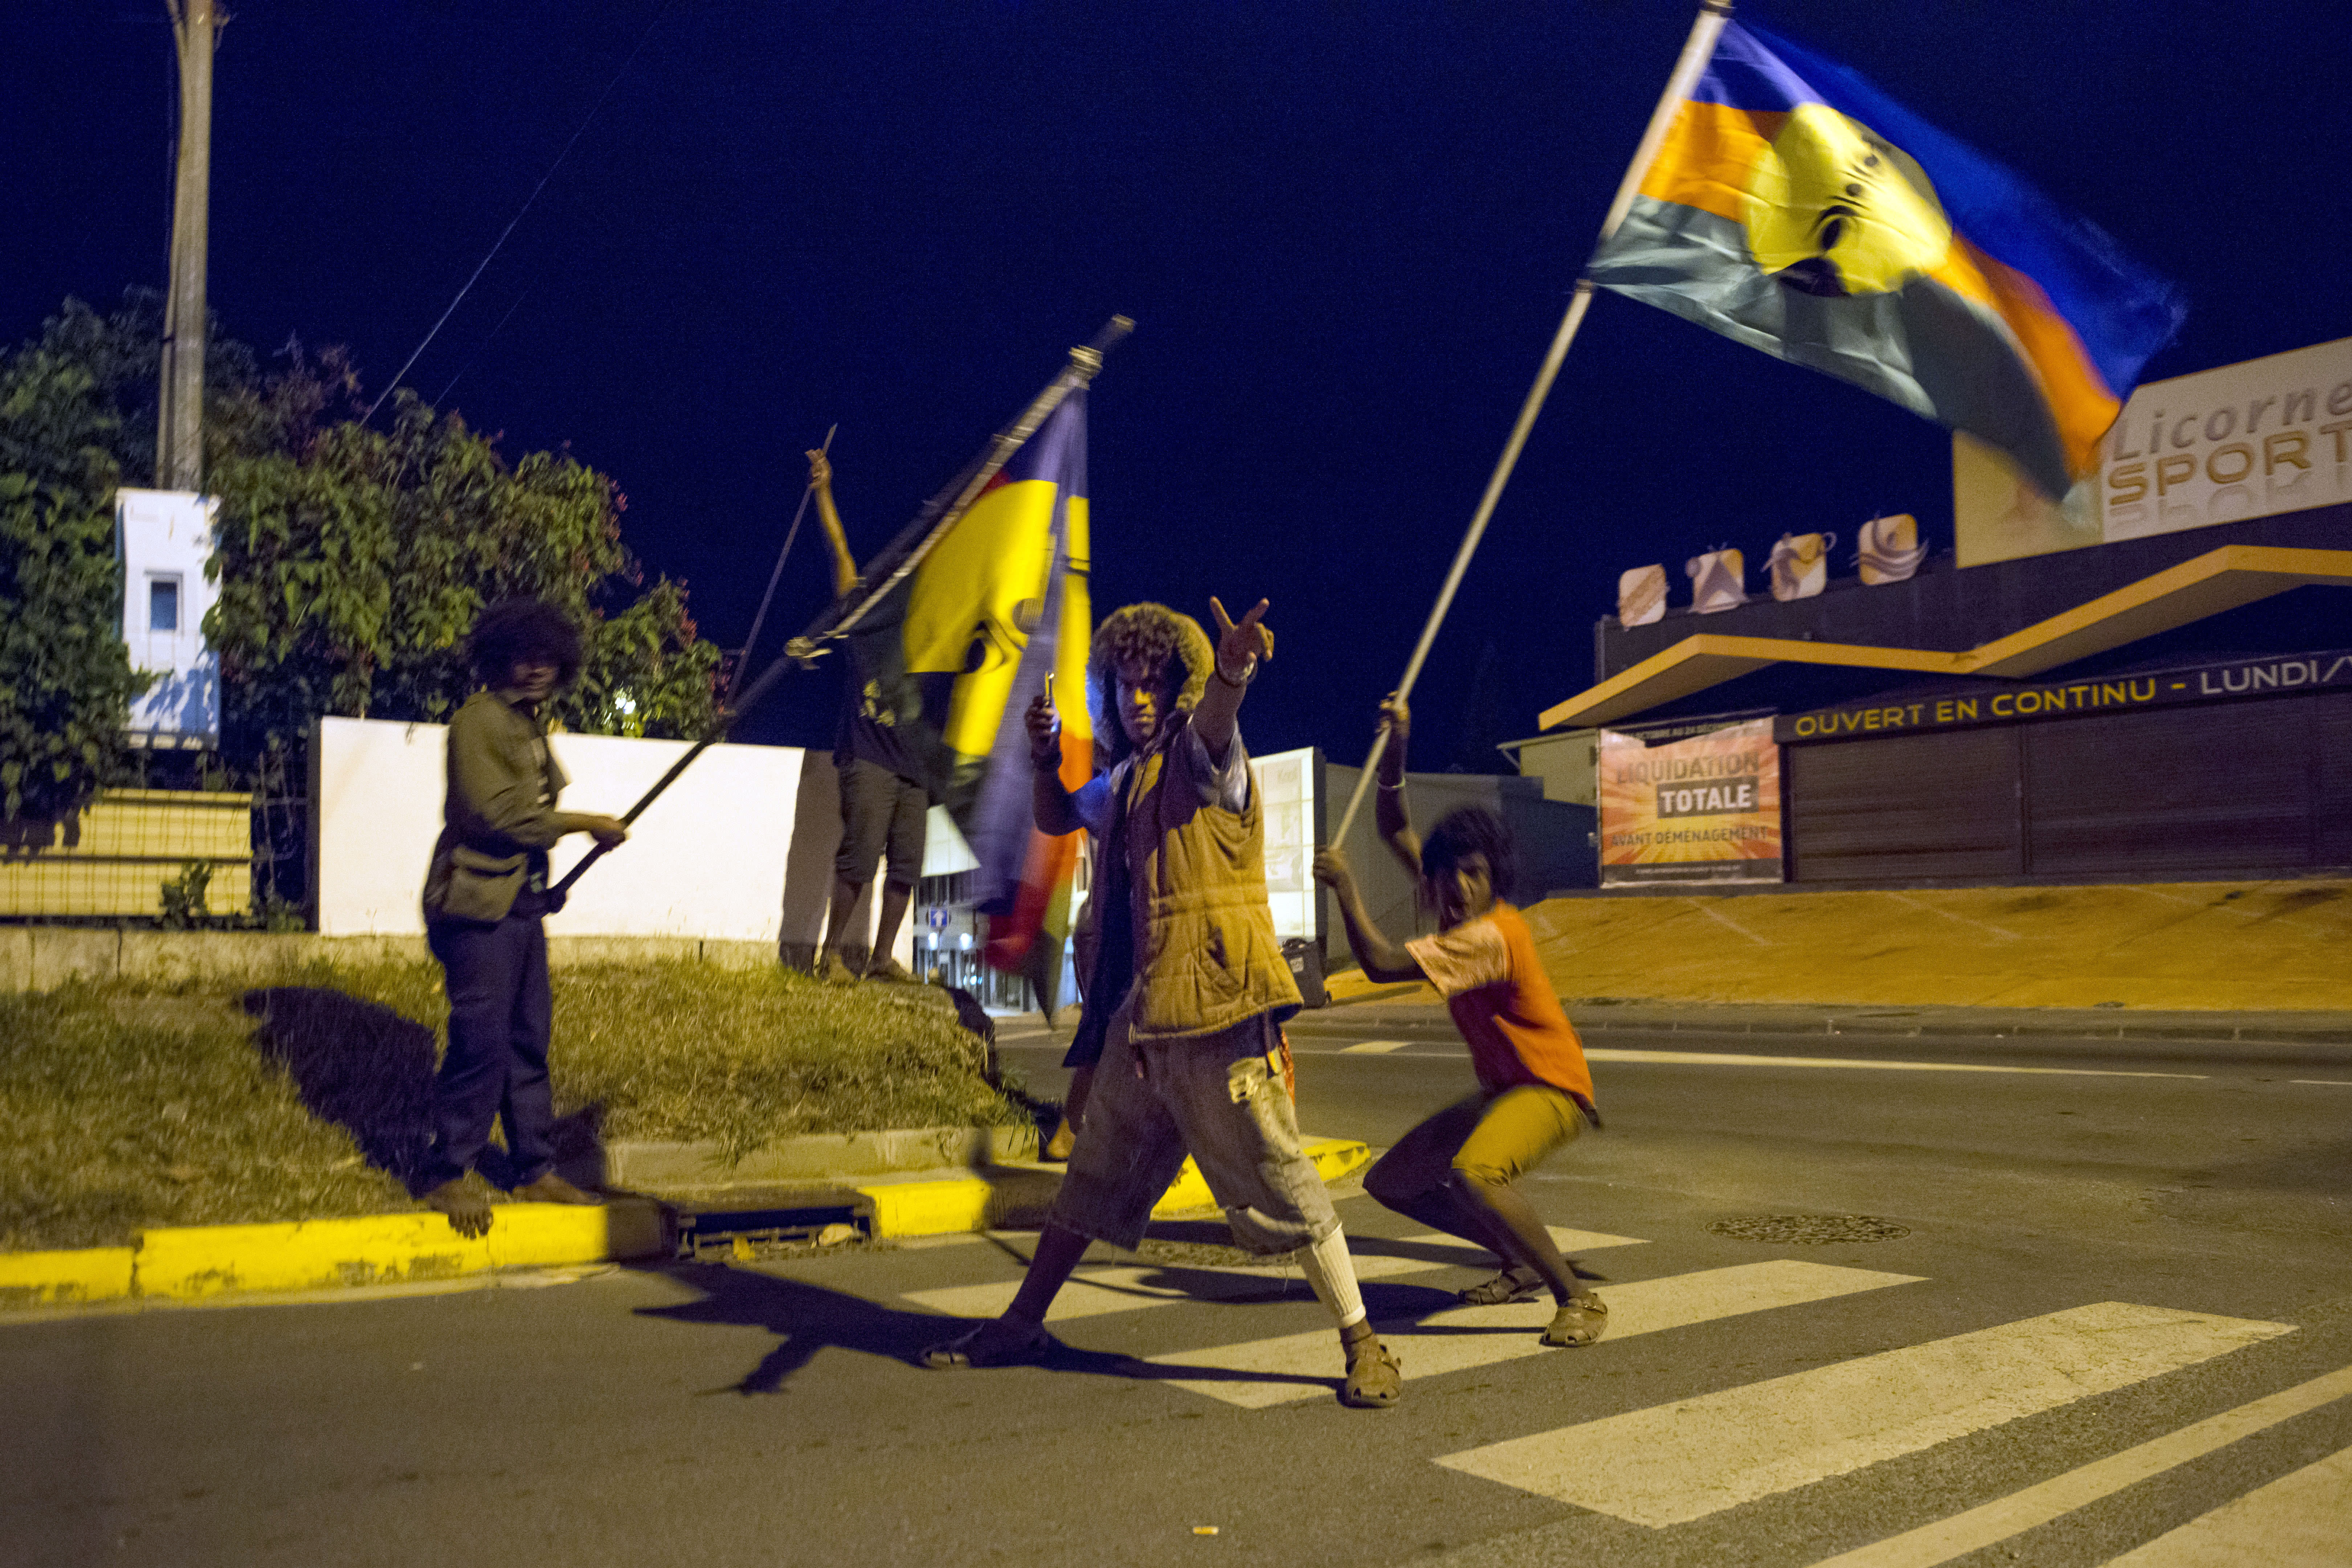 FILE - In this Nov.4, 2018 file photo, pro-independence activist strike a pose as they celebrate in the streets of Noumea, the New Caledonia's capital, while waving the indigenous Malanesian flag called the 'Kanak' flag. Voters in New Caledonia, a French archipelago in the South Pacific, are to choose whether they want independence from France in a referendum that marks a milestone in a three-decades-long decolonization effort. The vote on Sunday, Oct. 4, 2020 is key to determine the future of the archipelago east of Australia and its 270,000 inhabitants, including the native Kanaks, who once suffered from strict segregation policies, and the descendants of European colonizers. (AP Photo/Mathurin Derel, file)